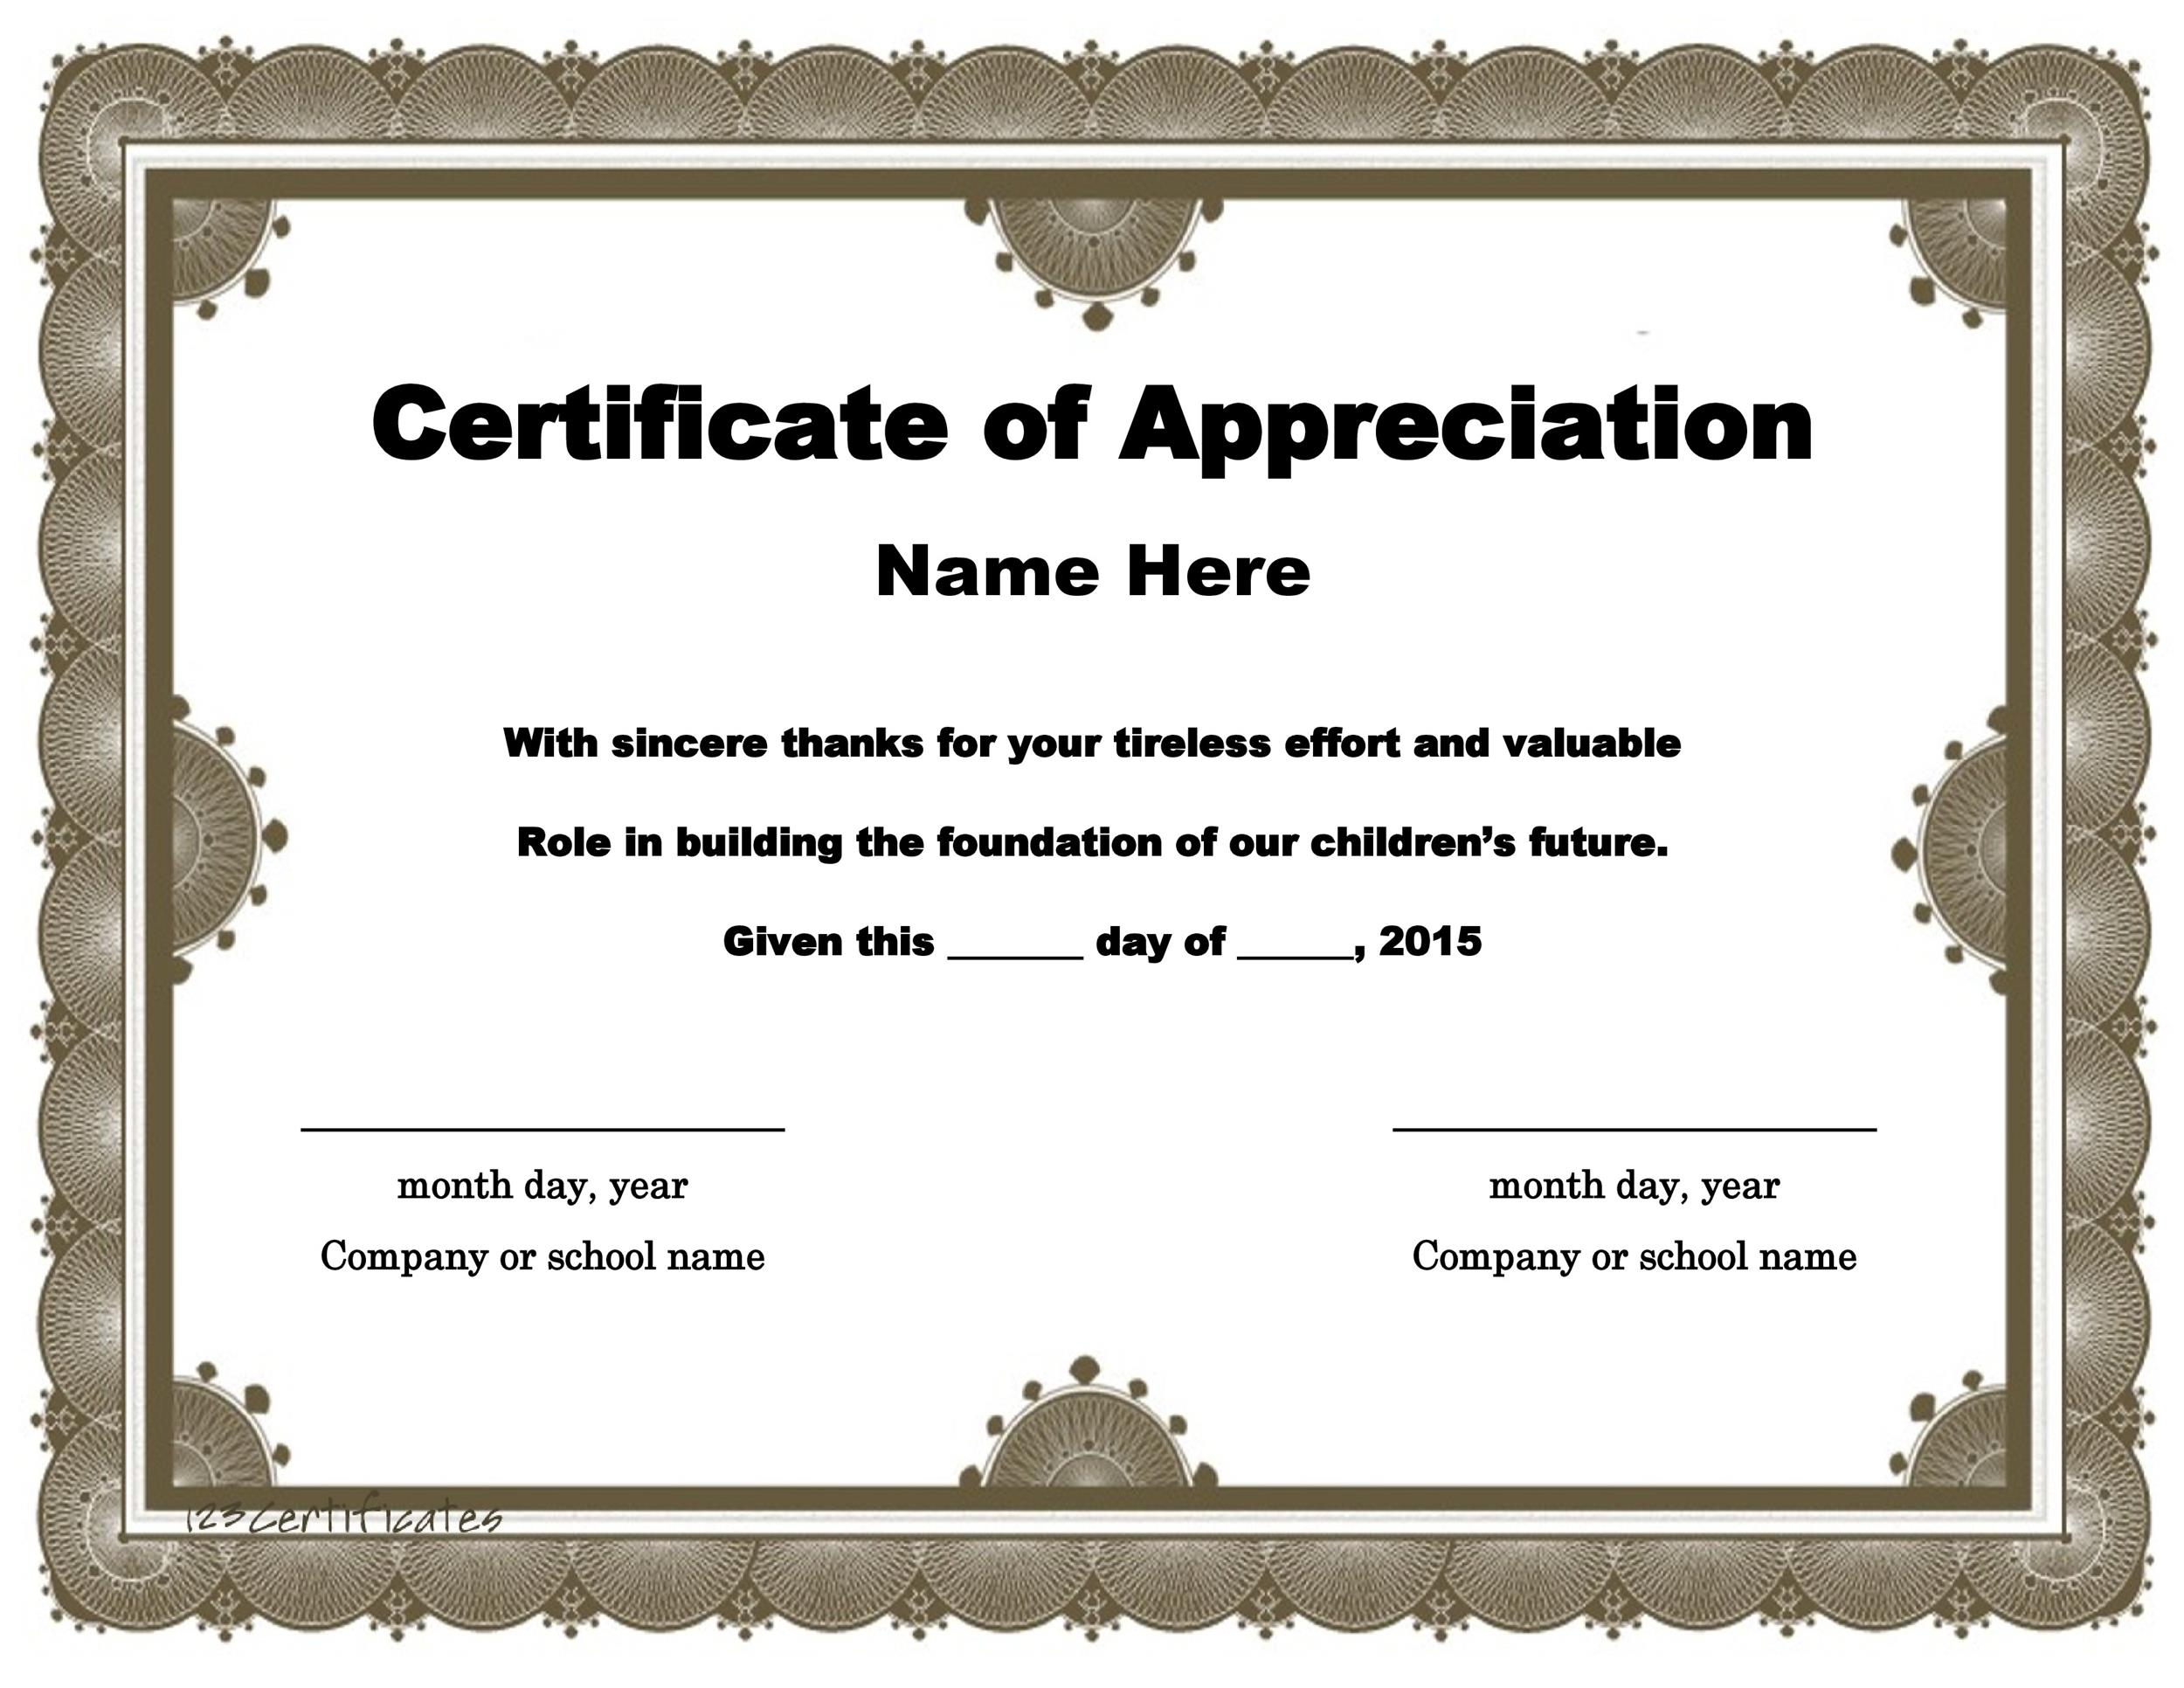 30 Free Certificate of Appreciation Templates and Letters - Certificate Samples In Word Format